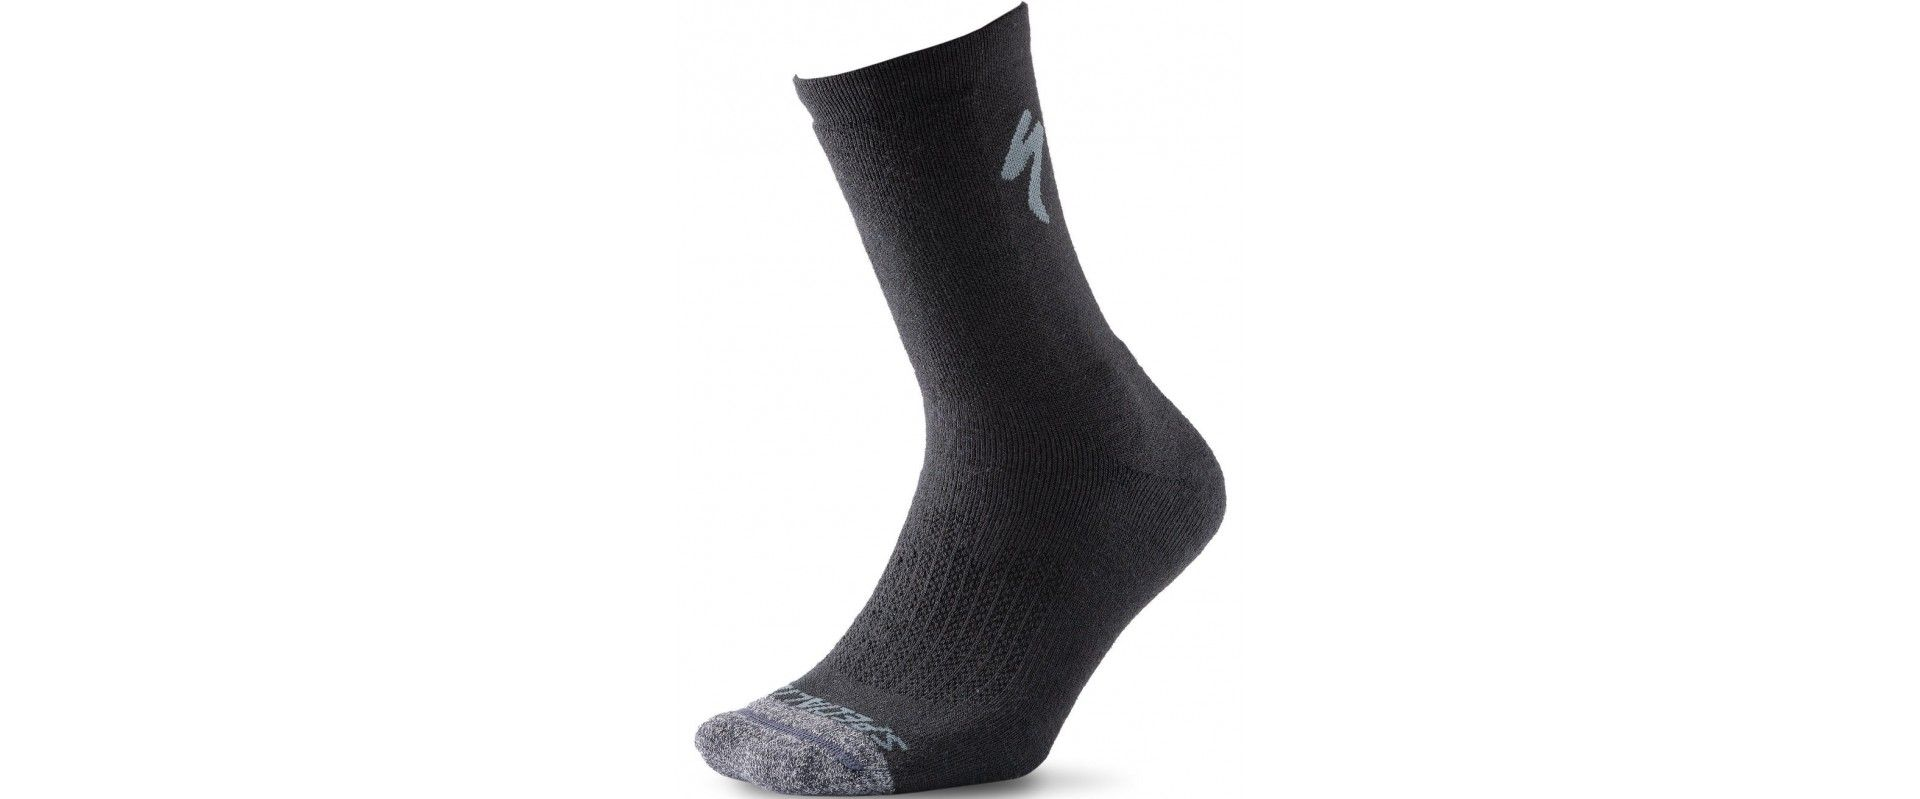 ♥ Arm and legs Warmer ♥ Specialized Concept Store Bicycle Store and Components